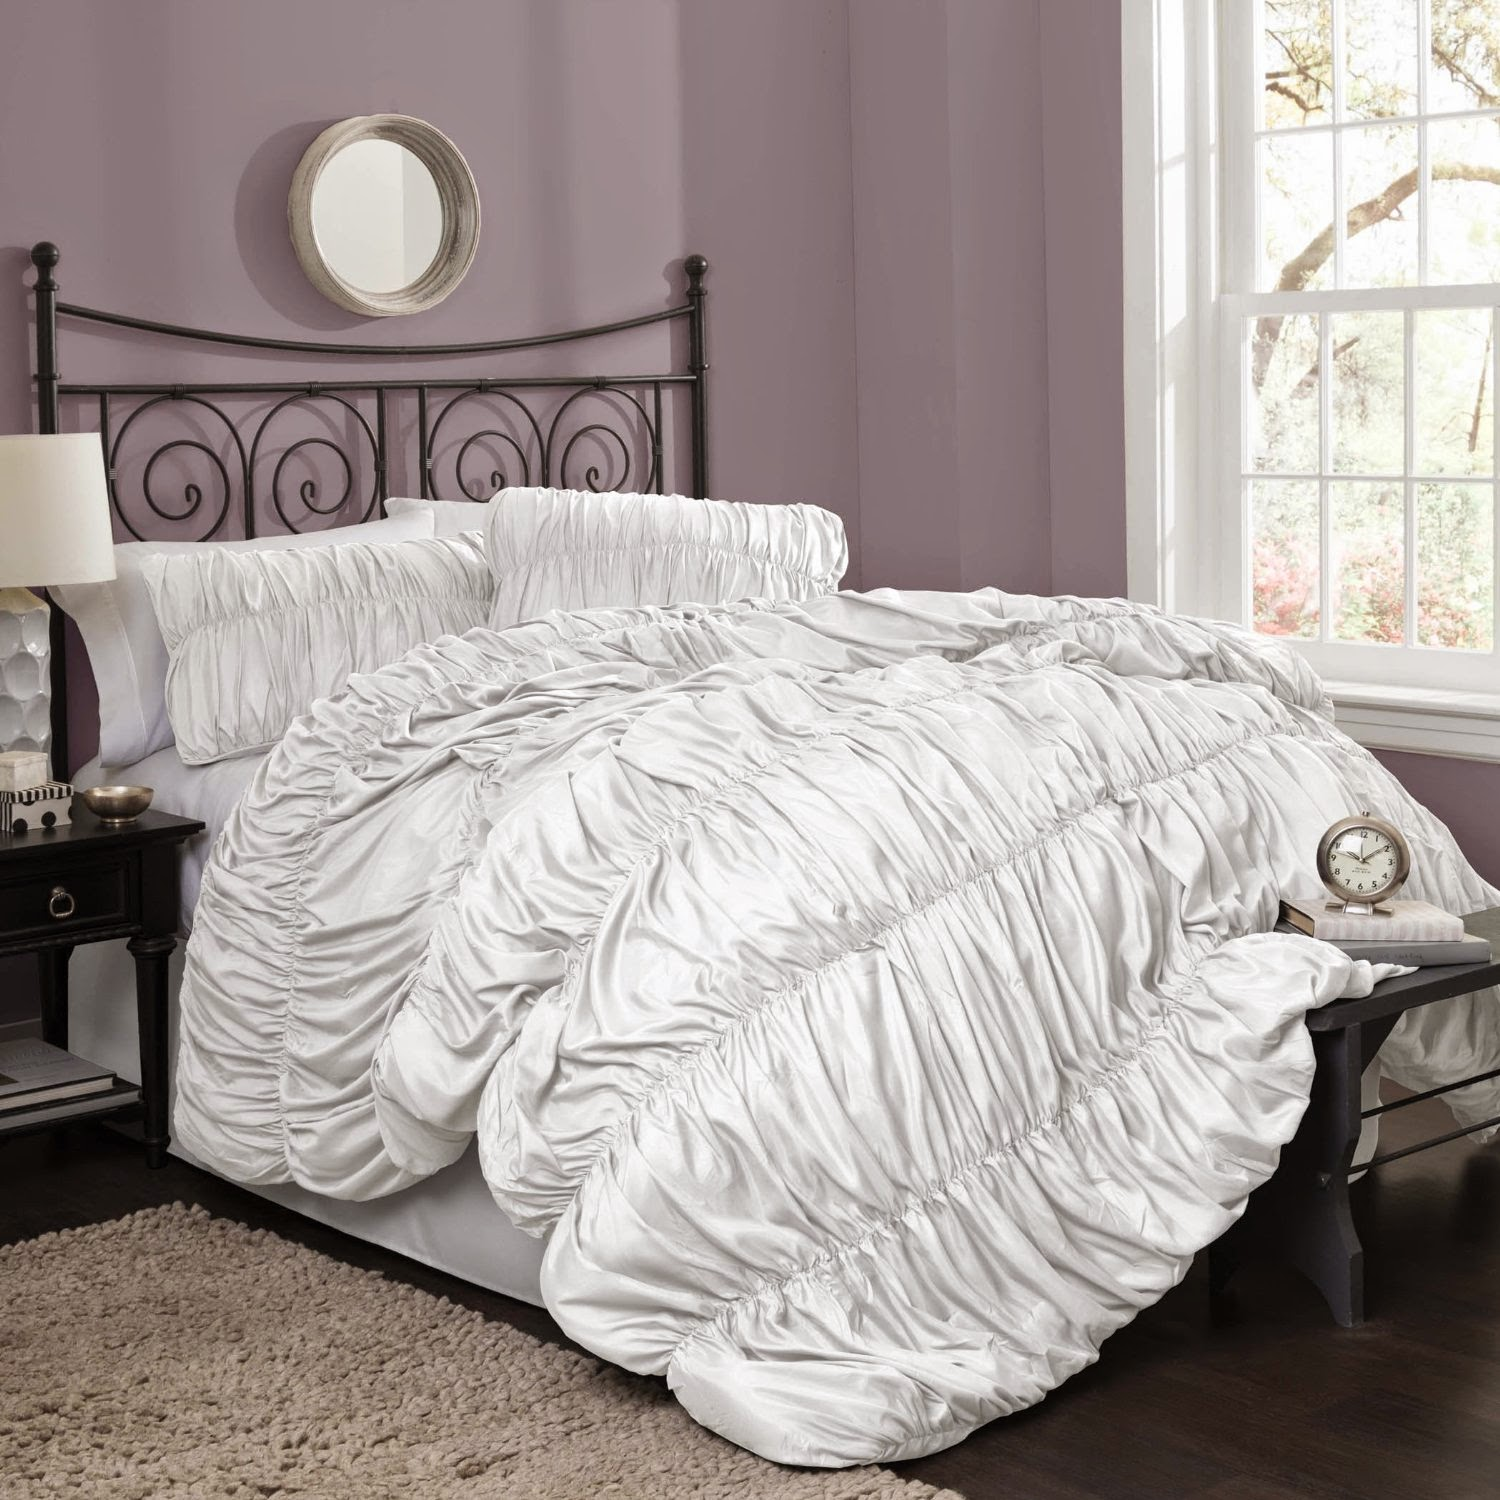 Thrifty and chic diy projects and home decor - Quilts and comforters for bedrooms ...